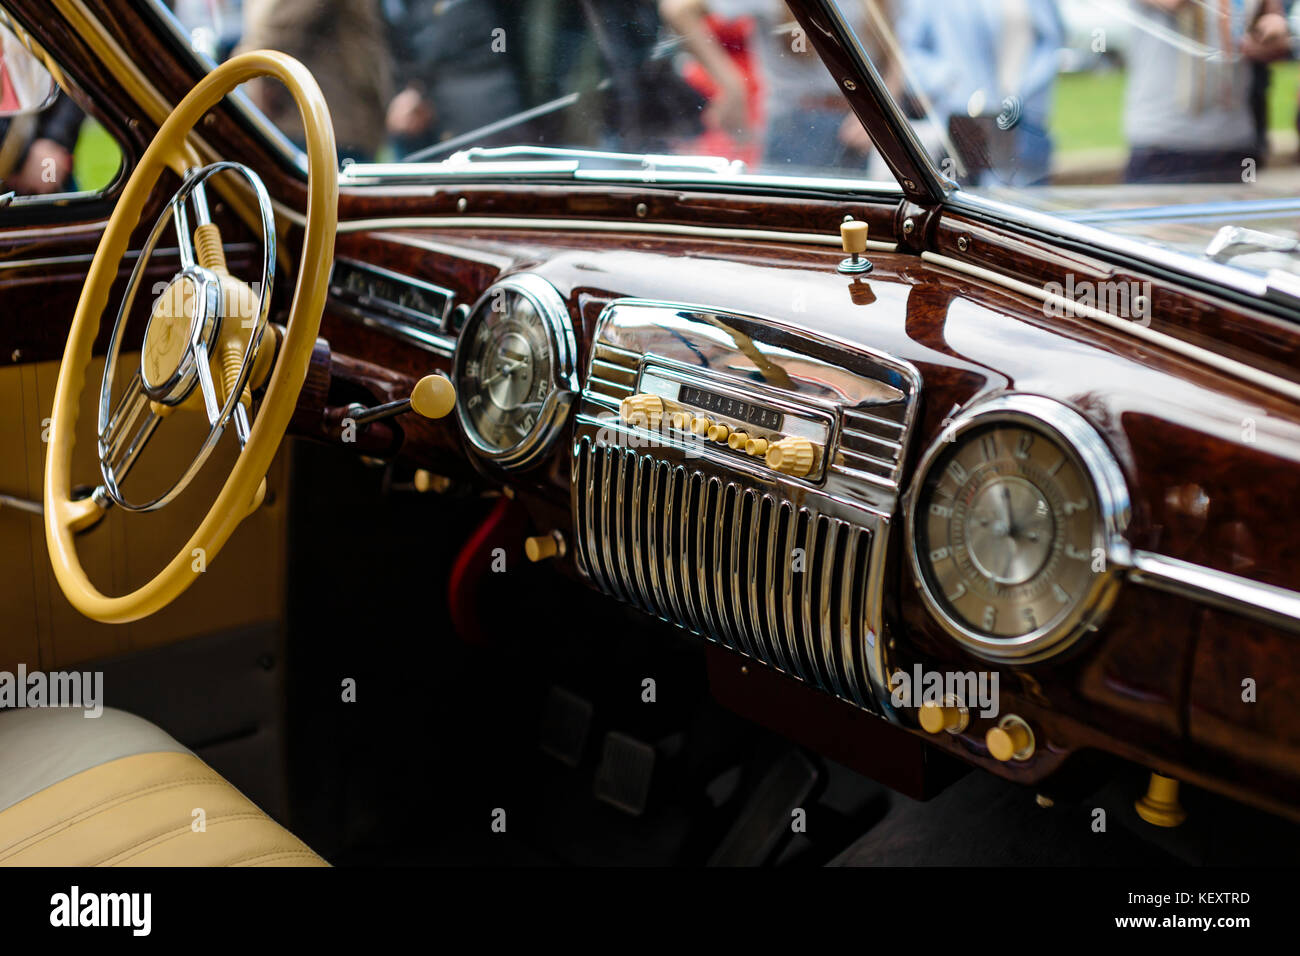 Photograph Of Vintage Car Interior St Petersburg Russia Stock